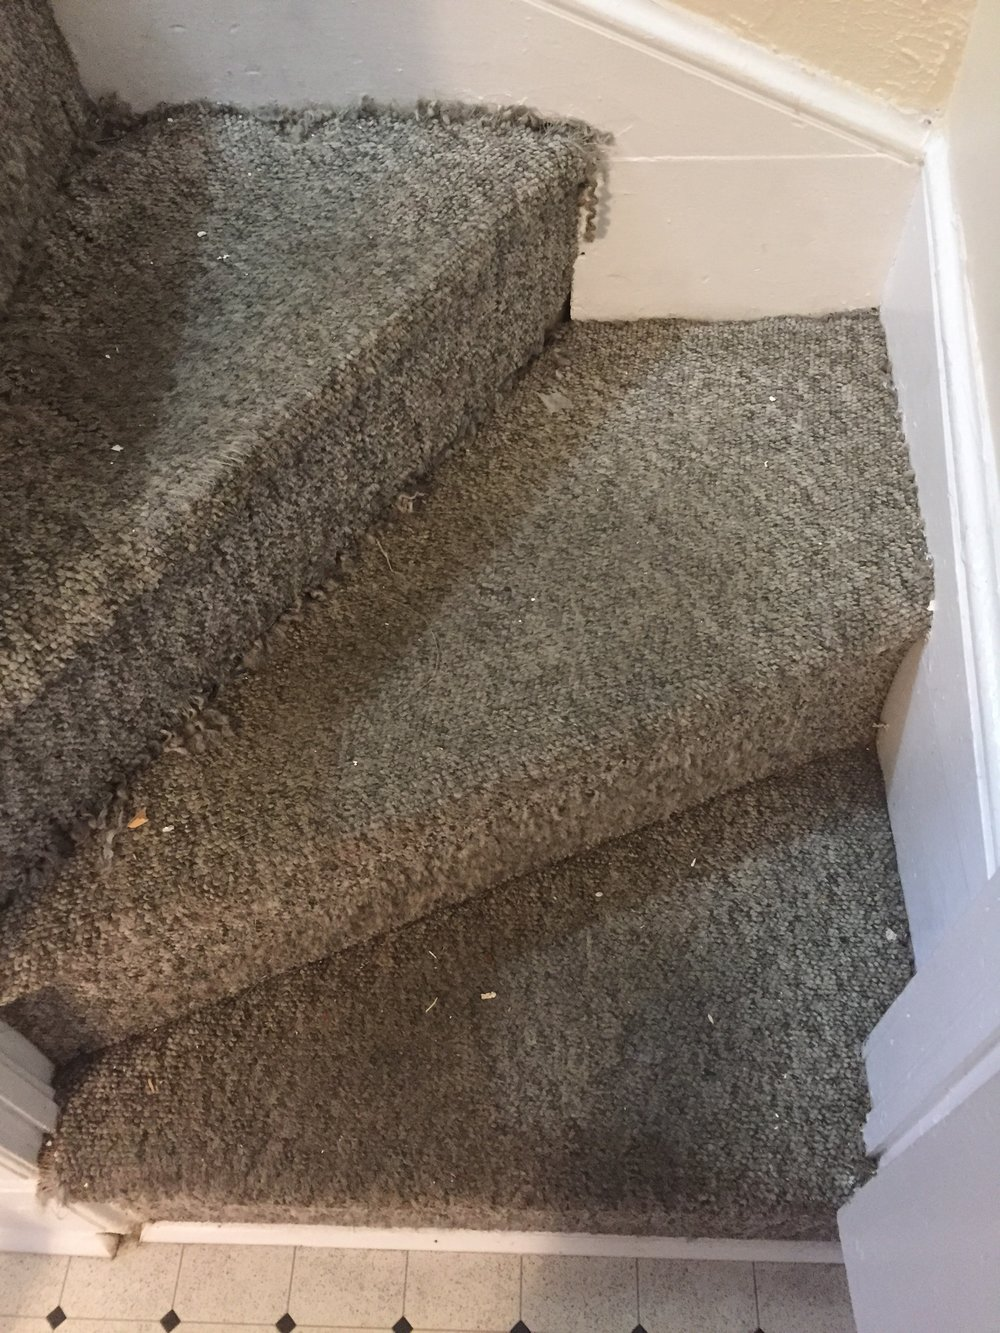 Stairs with carpet. No amount of cleaning can restore this carpet.